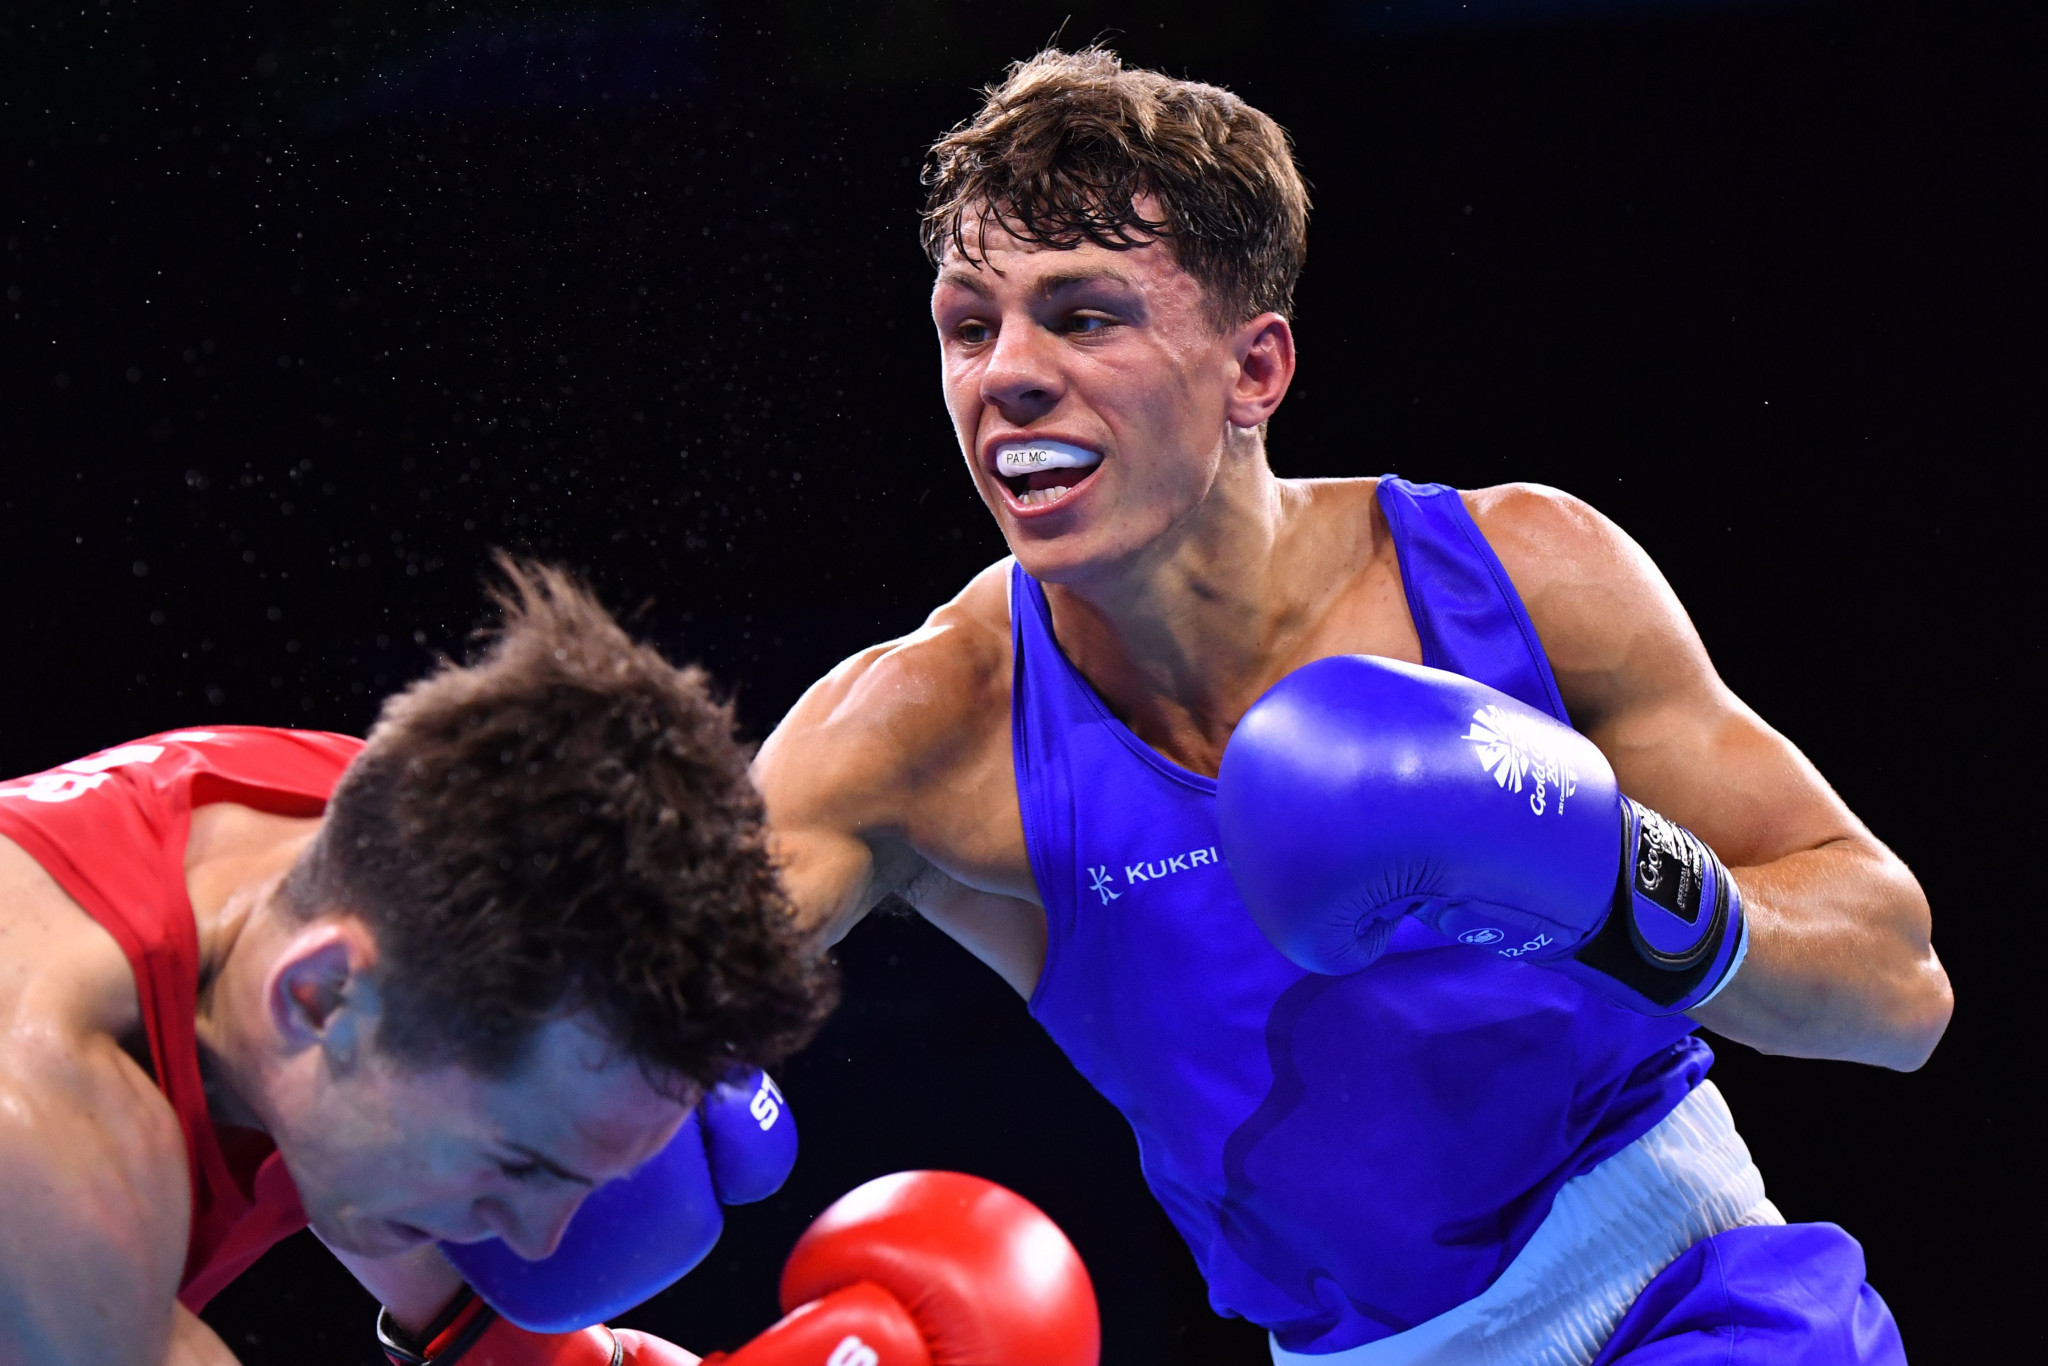 England's Pat McCormack narrowly defeated Aidan Walsh of Ireland in a repeat of the Gold Coast 2018 Commonwealth Games welterweight final ©Getty Images